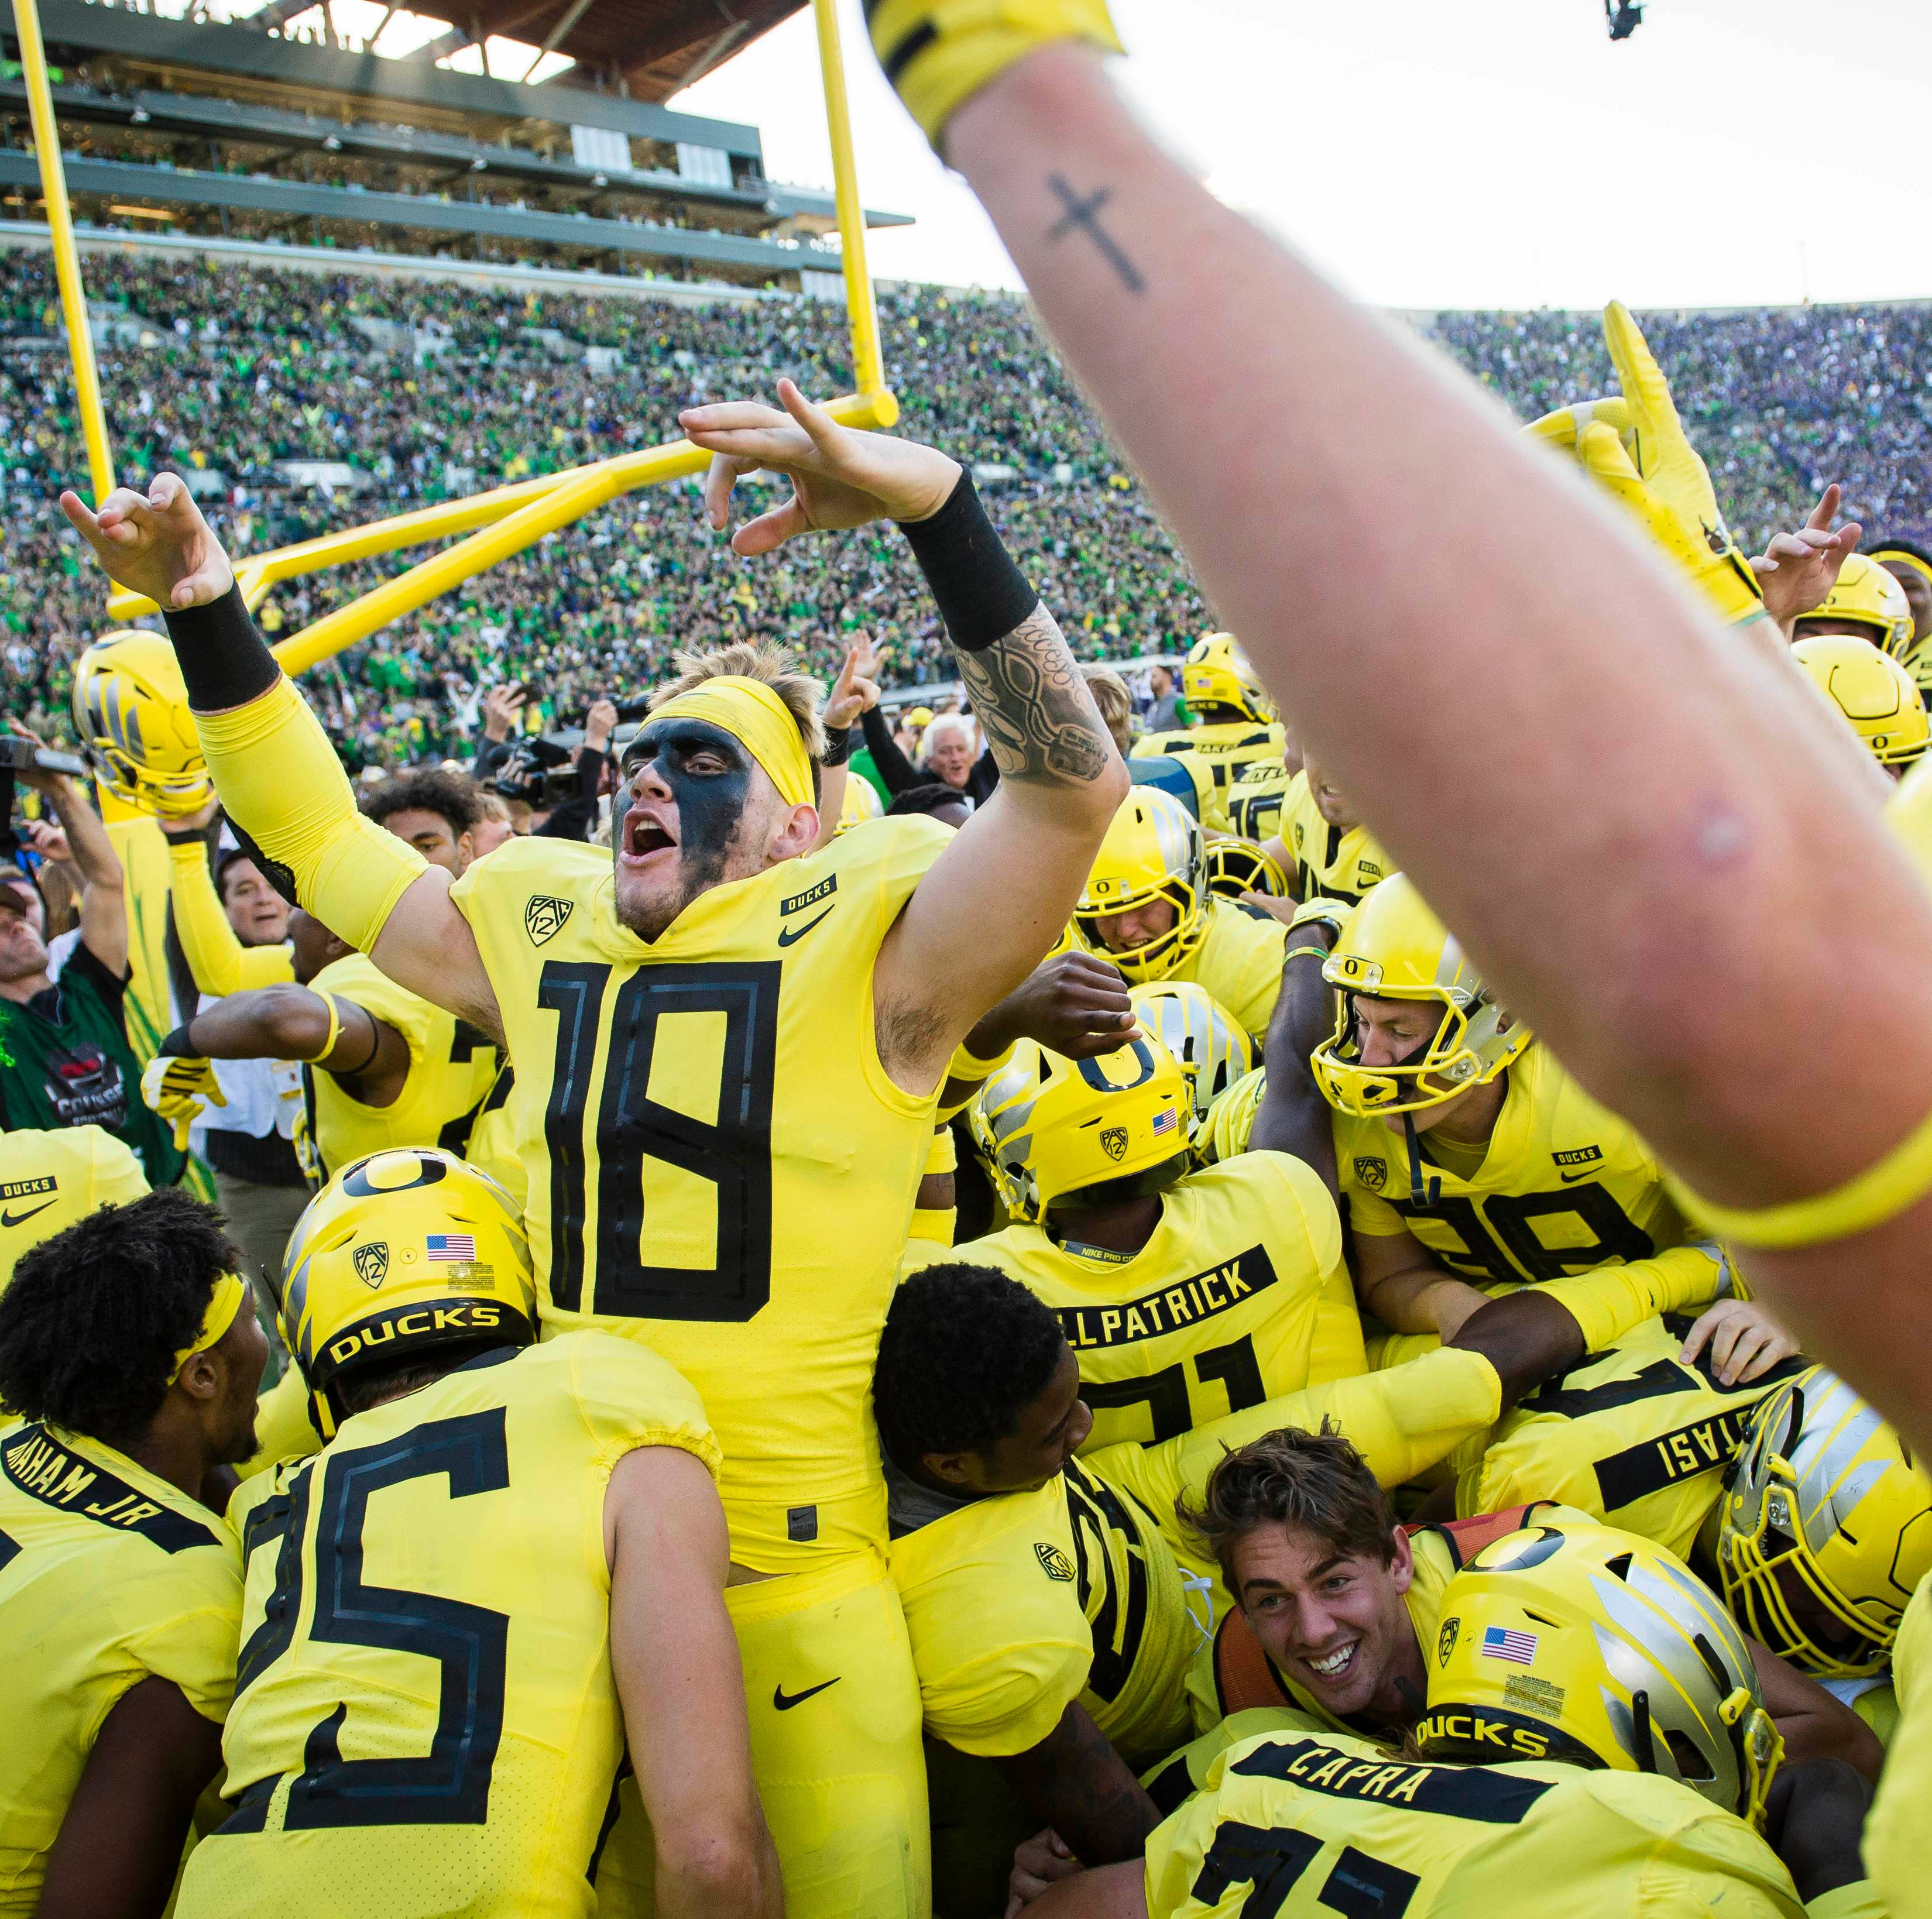 Oregon Ducks: Beating the Washington Huskies was a program-changing moment